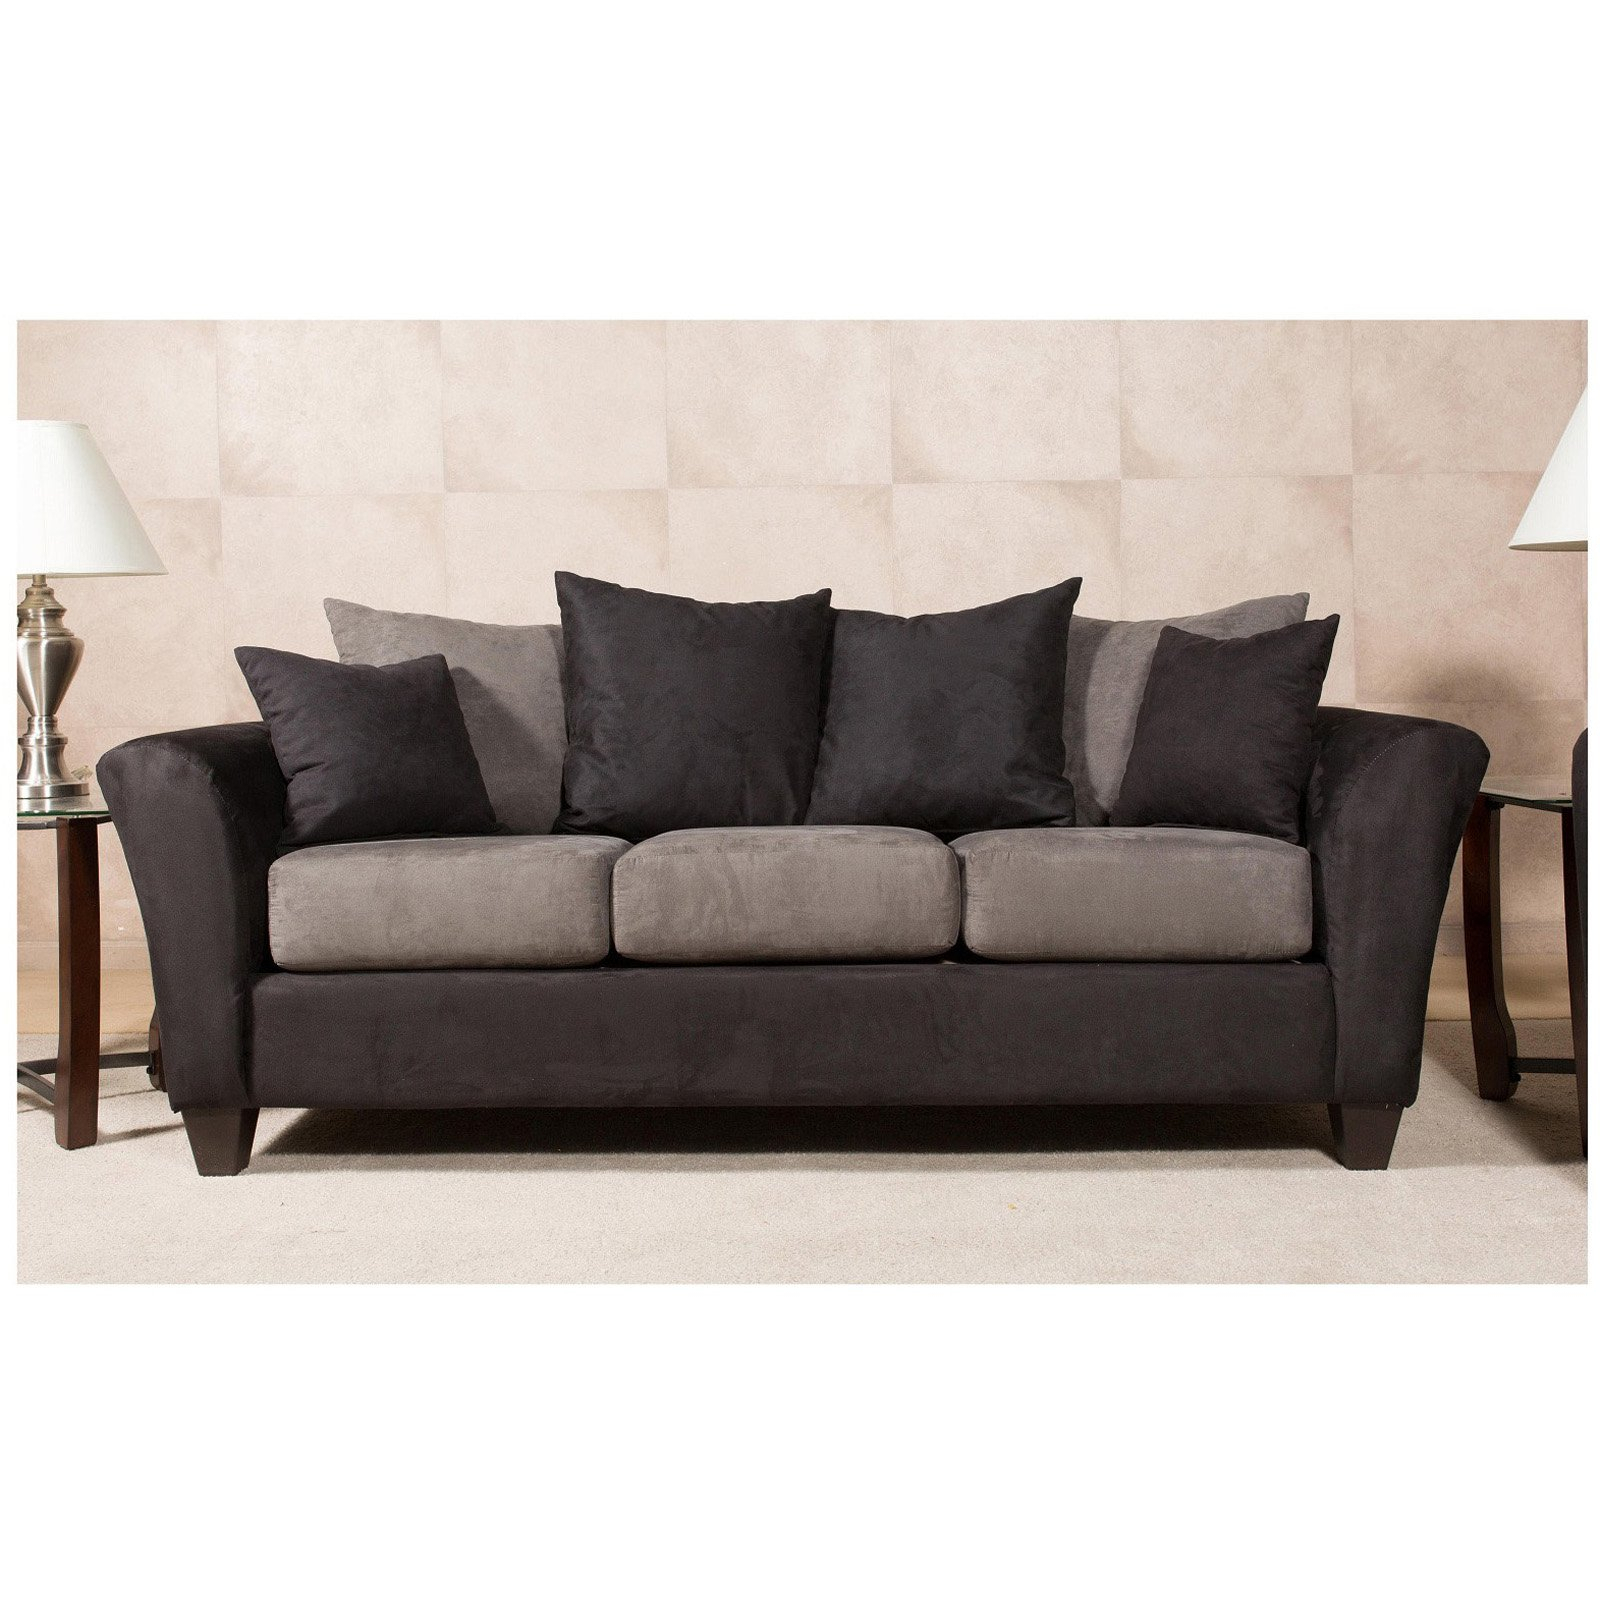 Chelsea Home Mansfield Sofa With 4 Accent Pillows – Walmart Within Mansfield Beige Linen Sofa Chairs (Image 3 of 25)